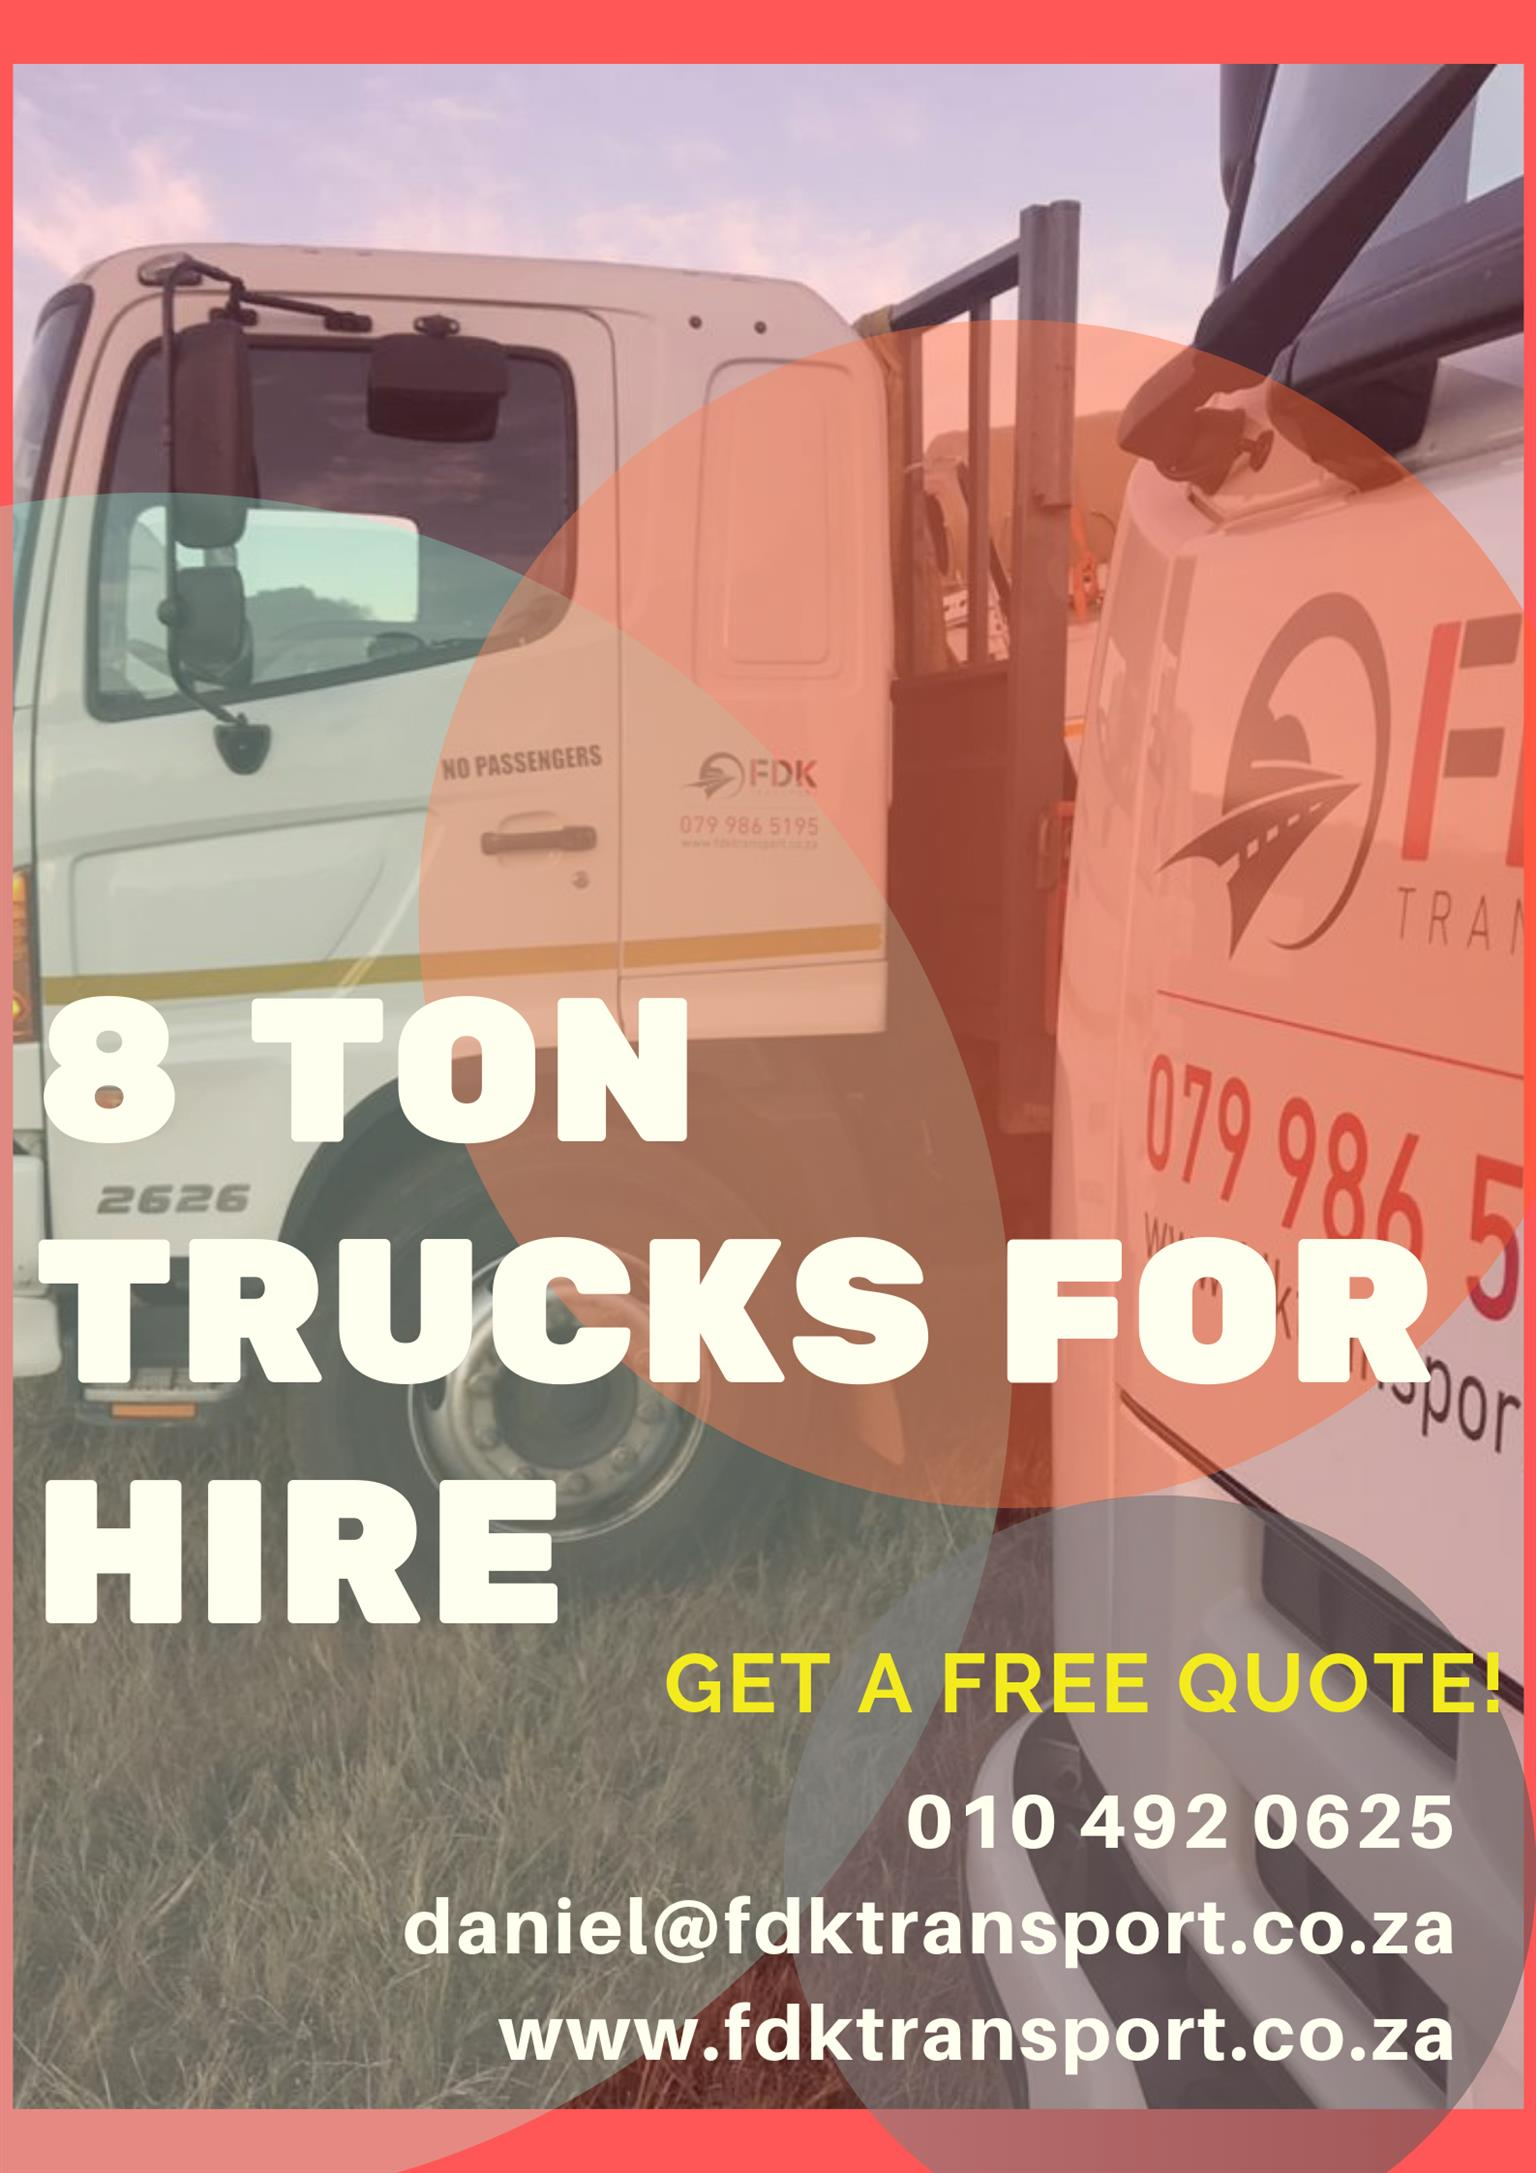 Truck hire and Transport